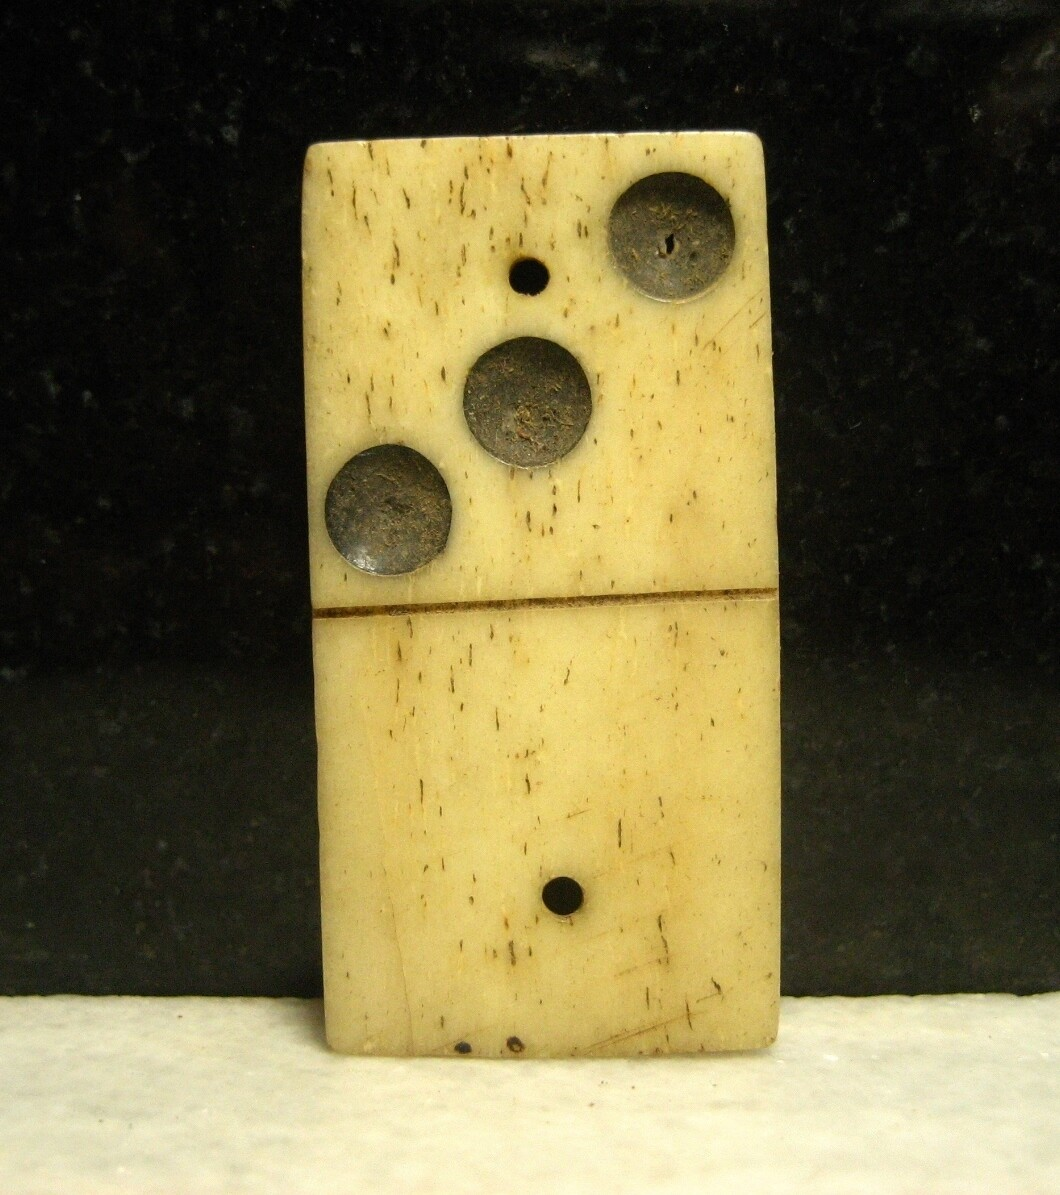 JUST ADDED ON 10/30 - CONFEDERATE PICKET POST ON THE PENINSULA / CHICKAHOMINY RIVER - A Soldier's Bone Domino